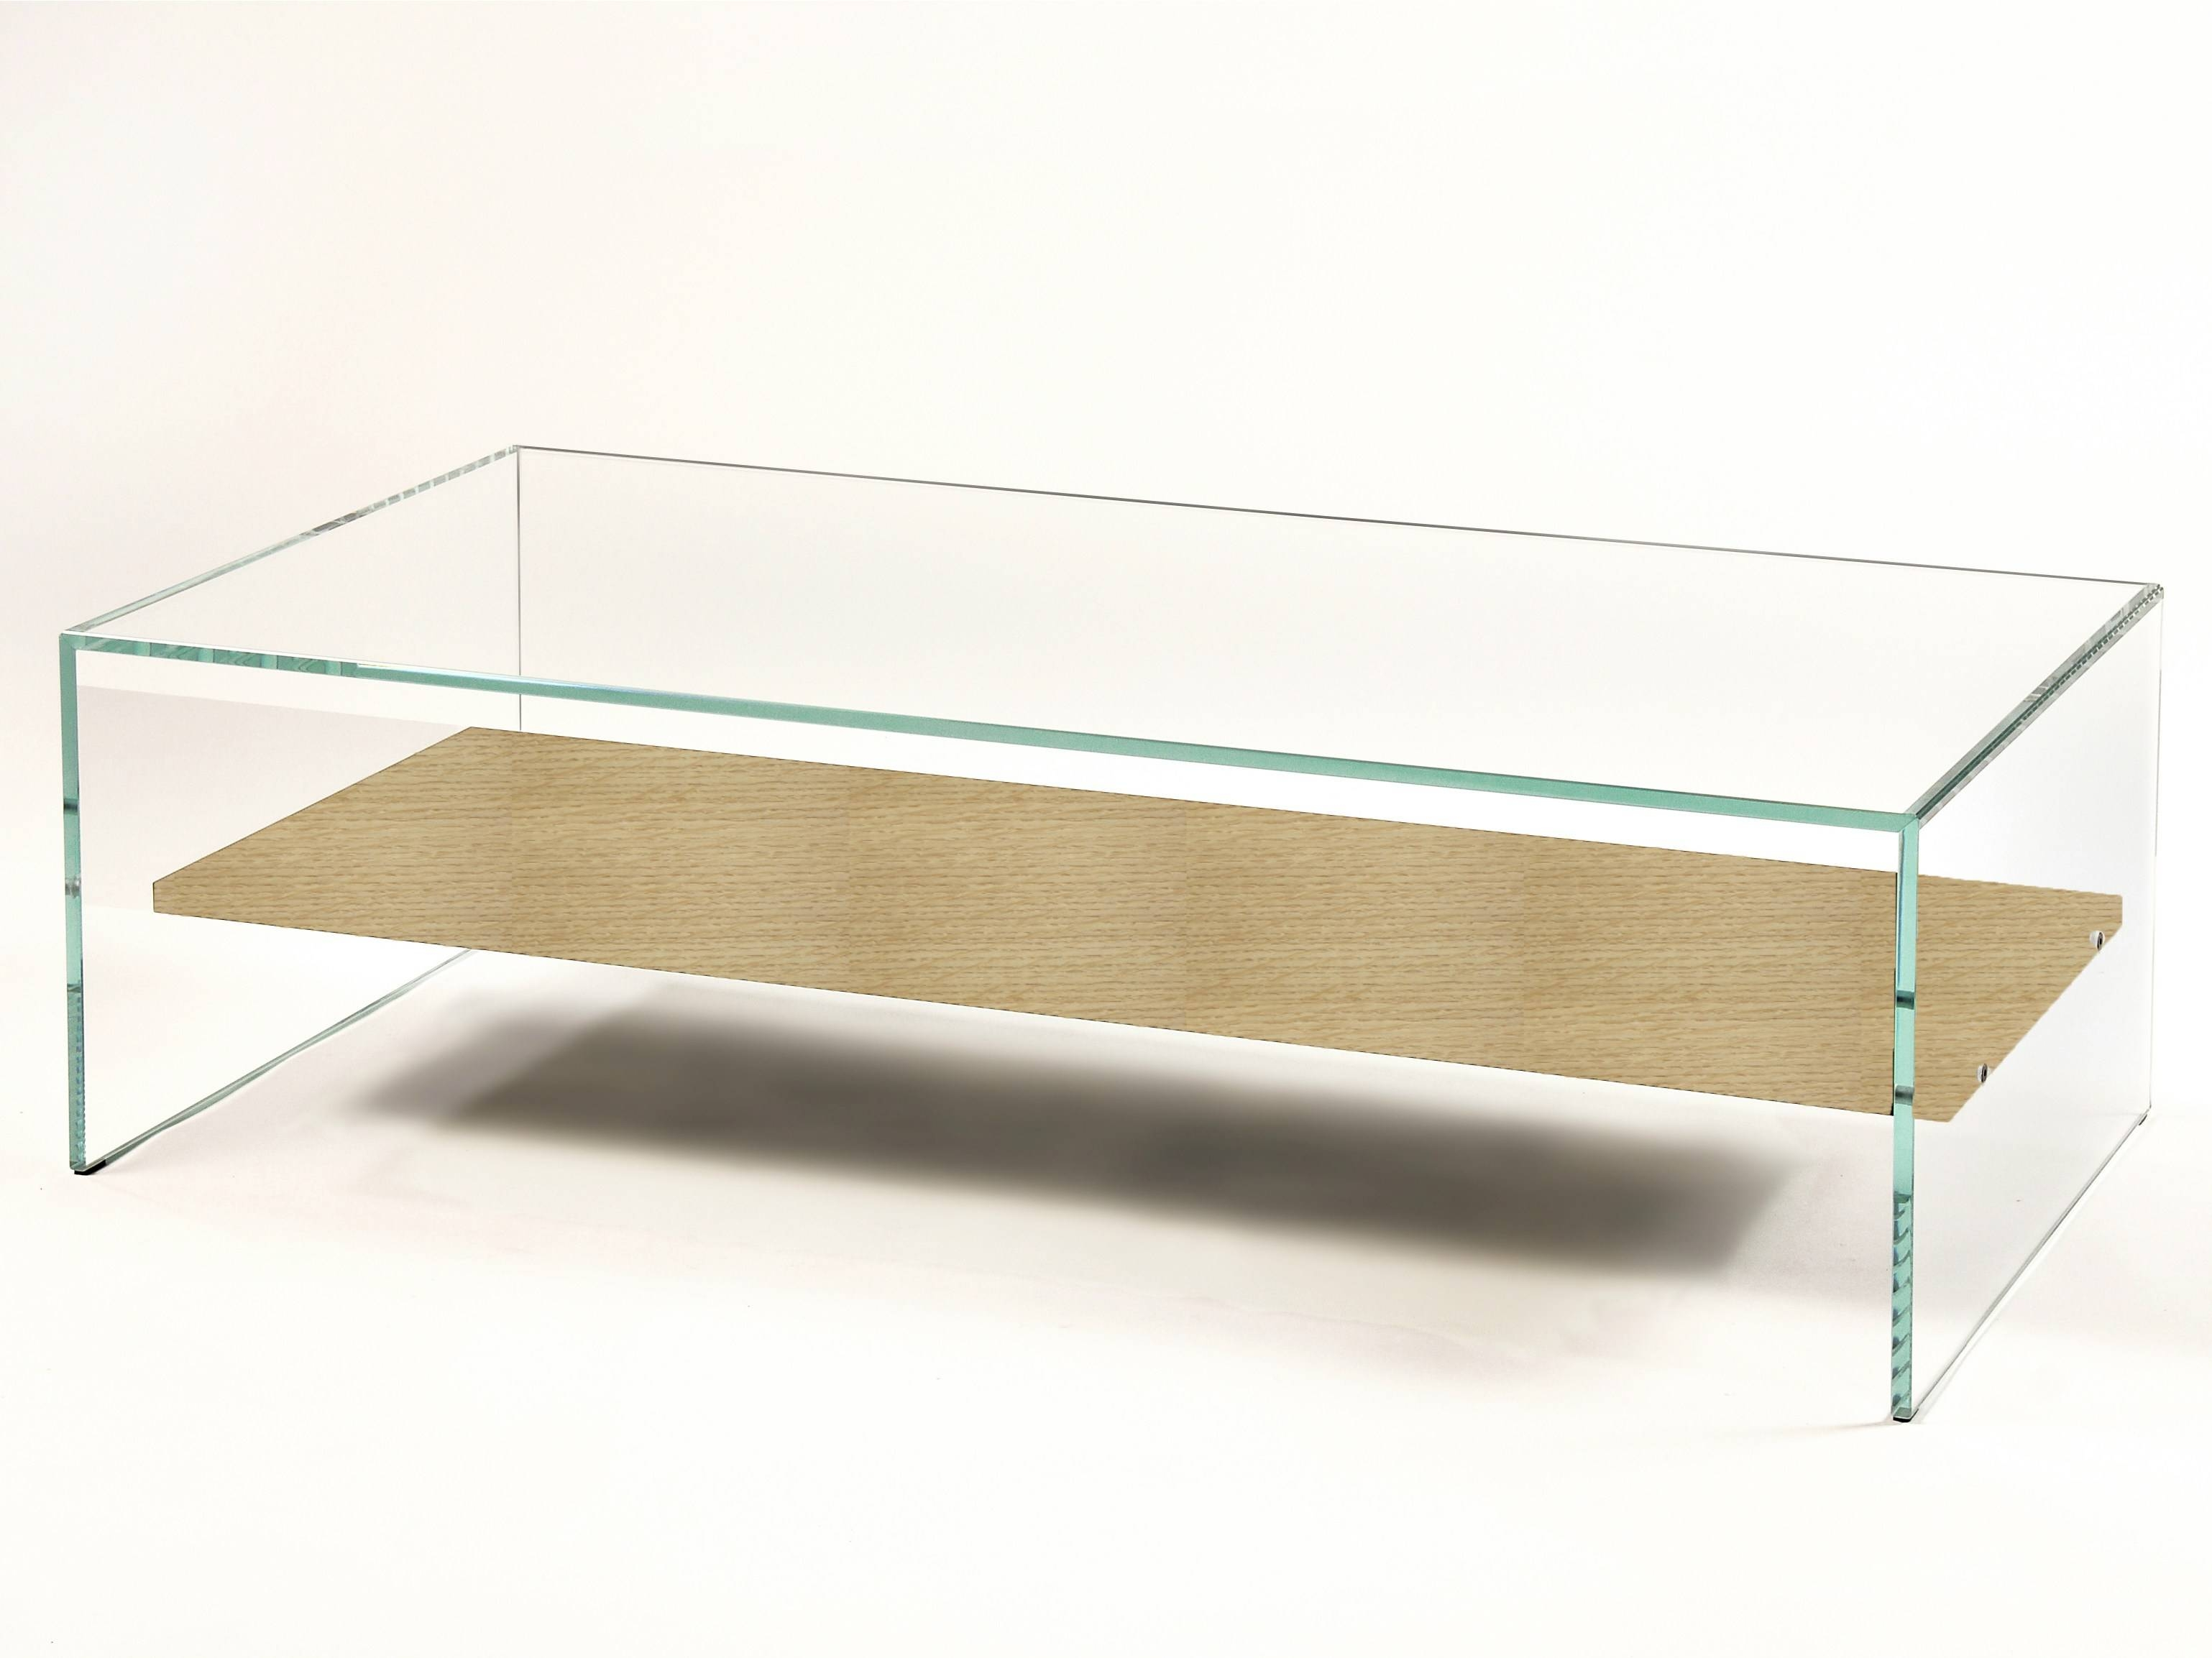 Low Glass Coffee Table Zen 11Adentro with regard to Rectangle Glass Coffee Table (Image 9 of 15)